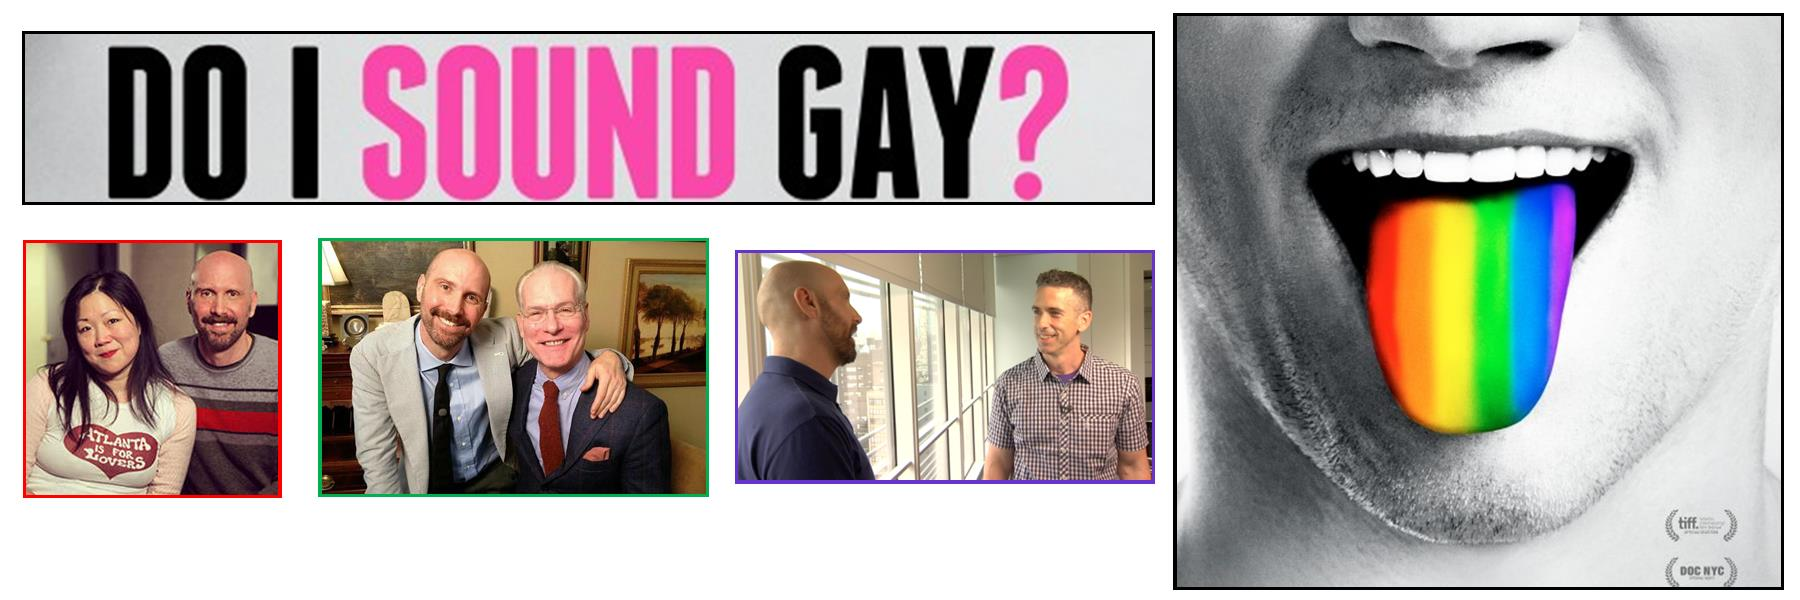 SAAF is proud to team up with the Loft for a screening of Do I Sound Gay?, a new, irreverent documentary.